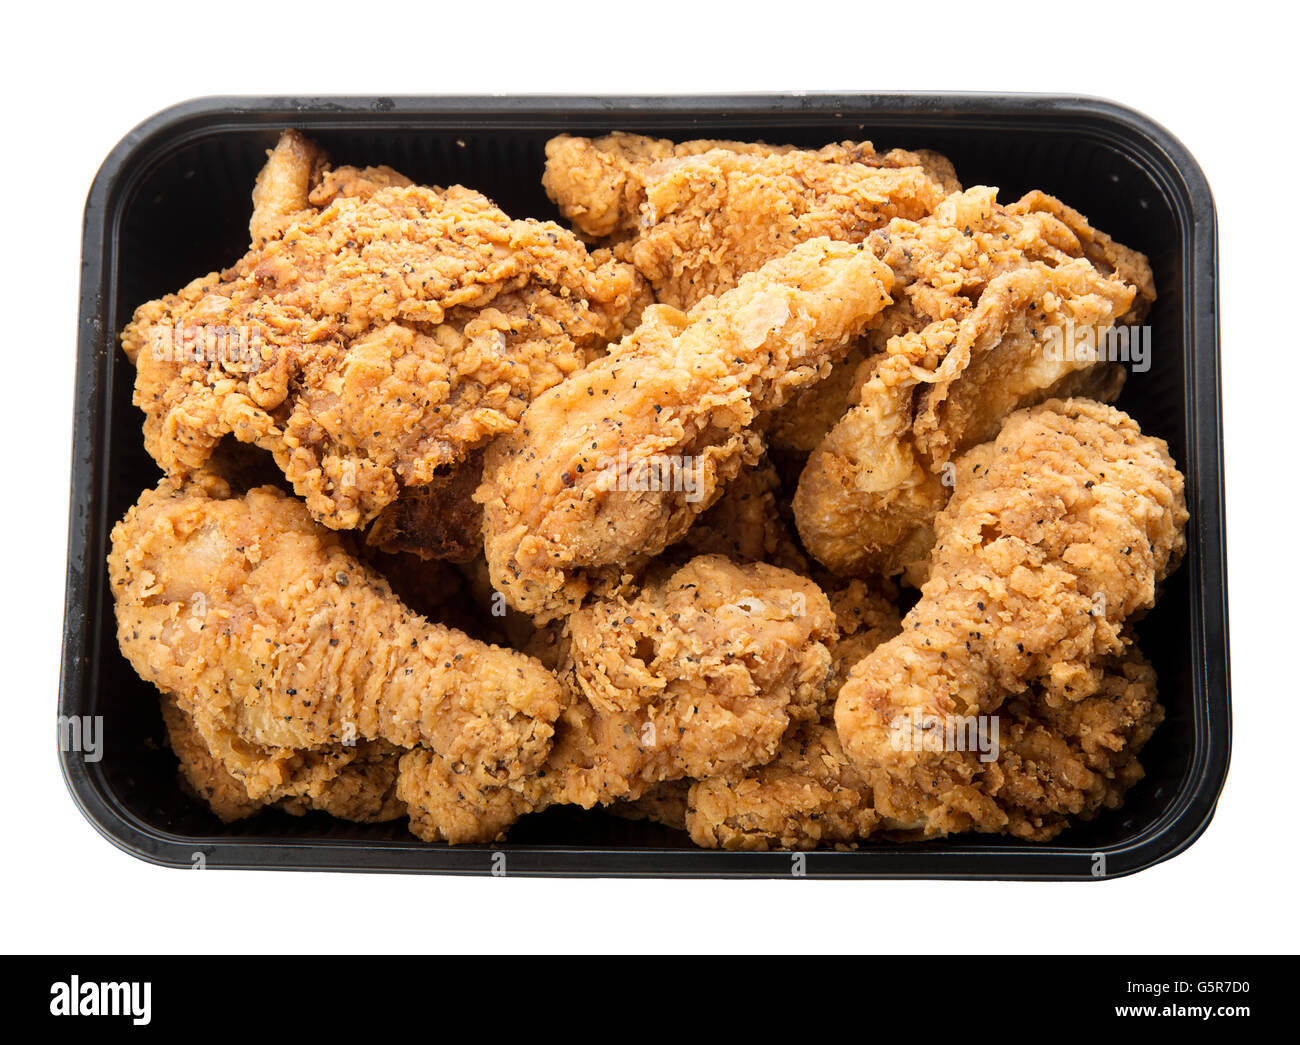 Close up of fried chicken in a plastic container isolated on white - Stock Image